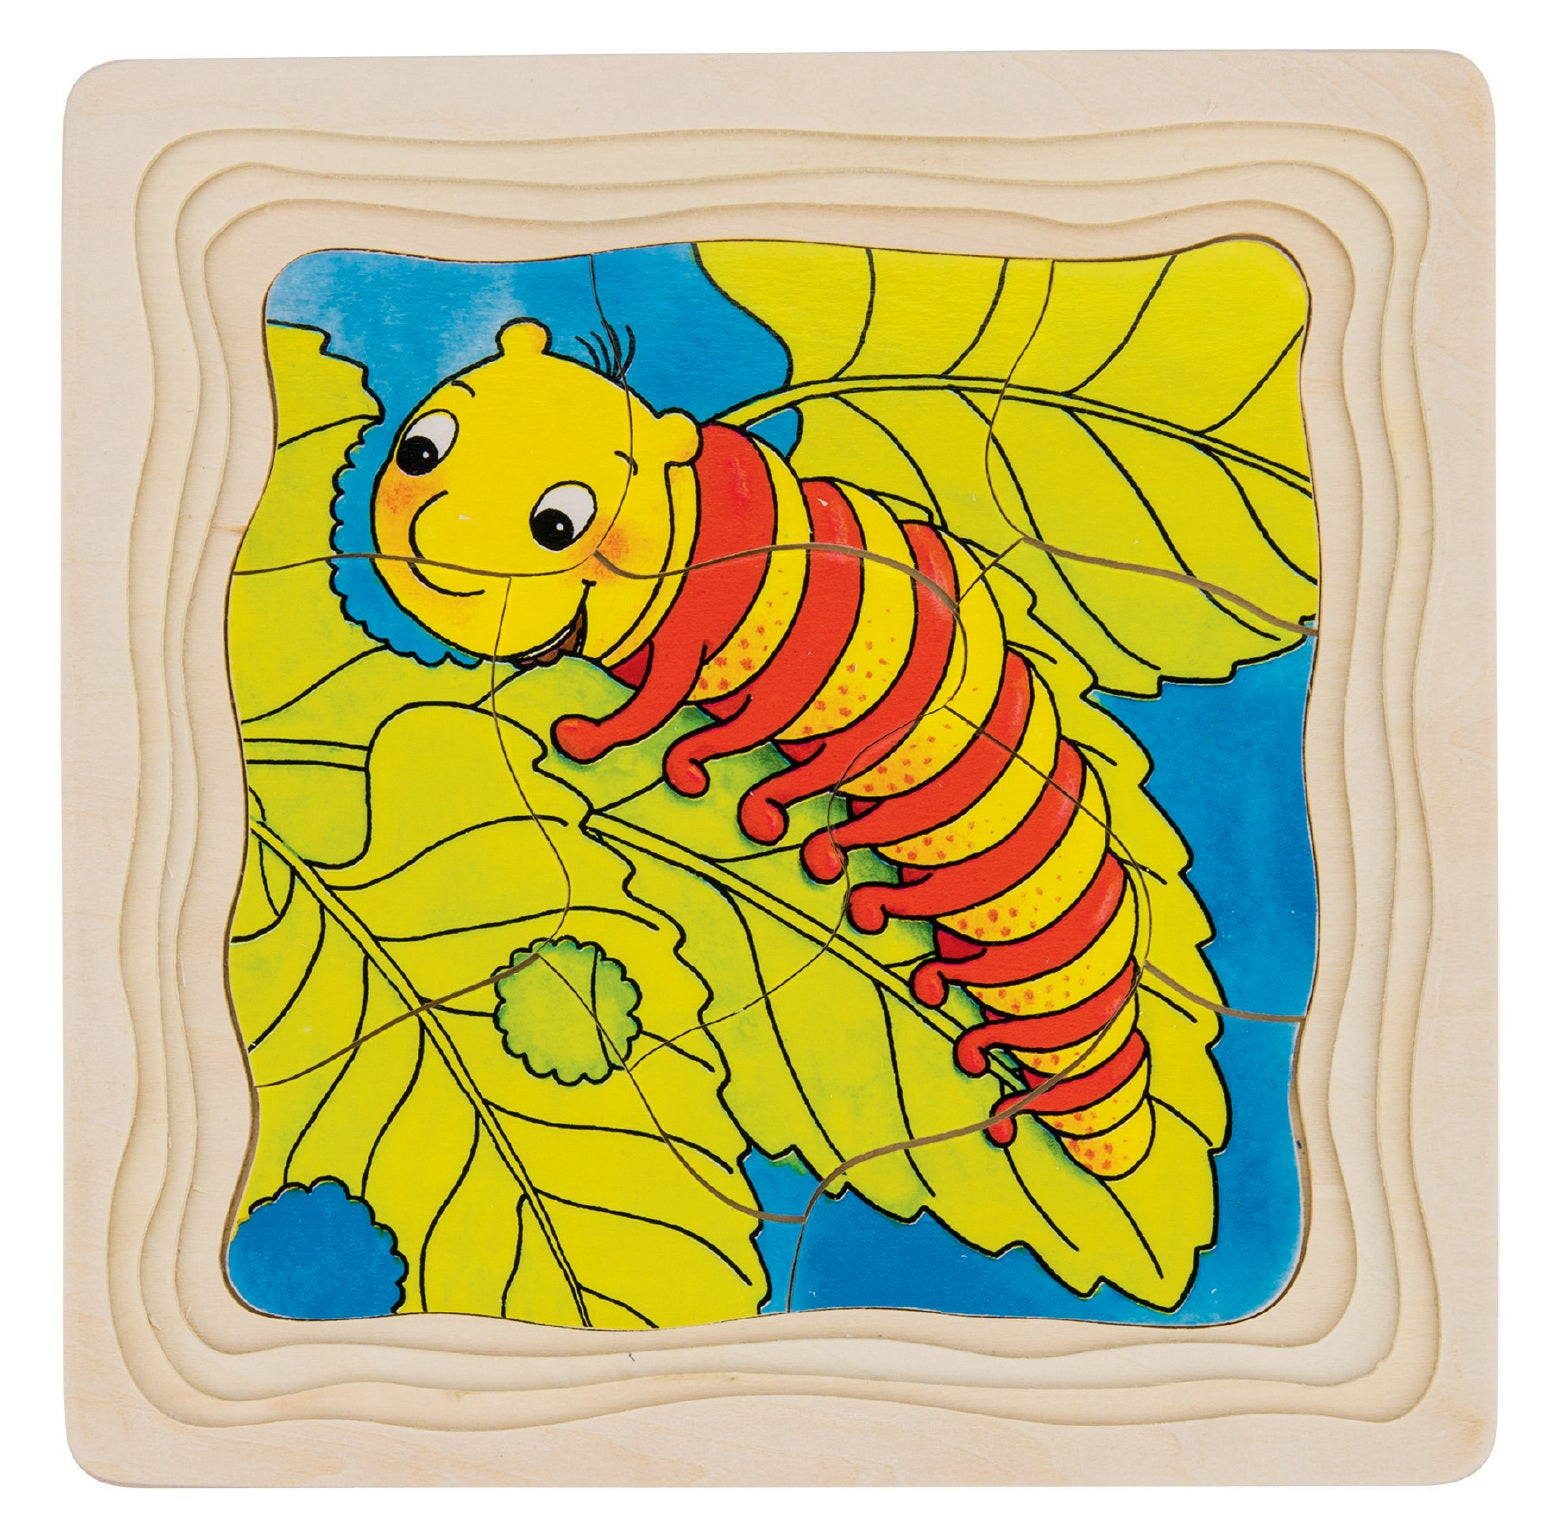 Caterpillar Lifecycle 4 Layer Puzzle